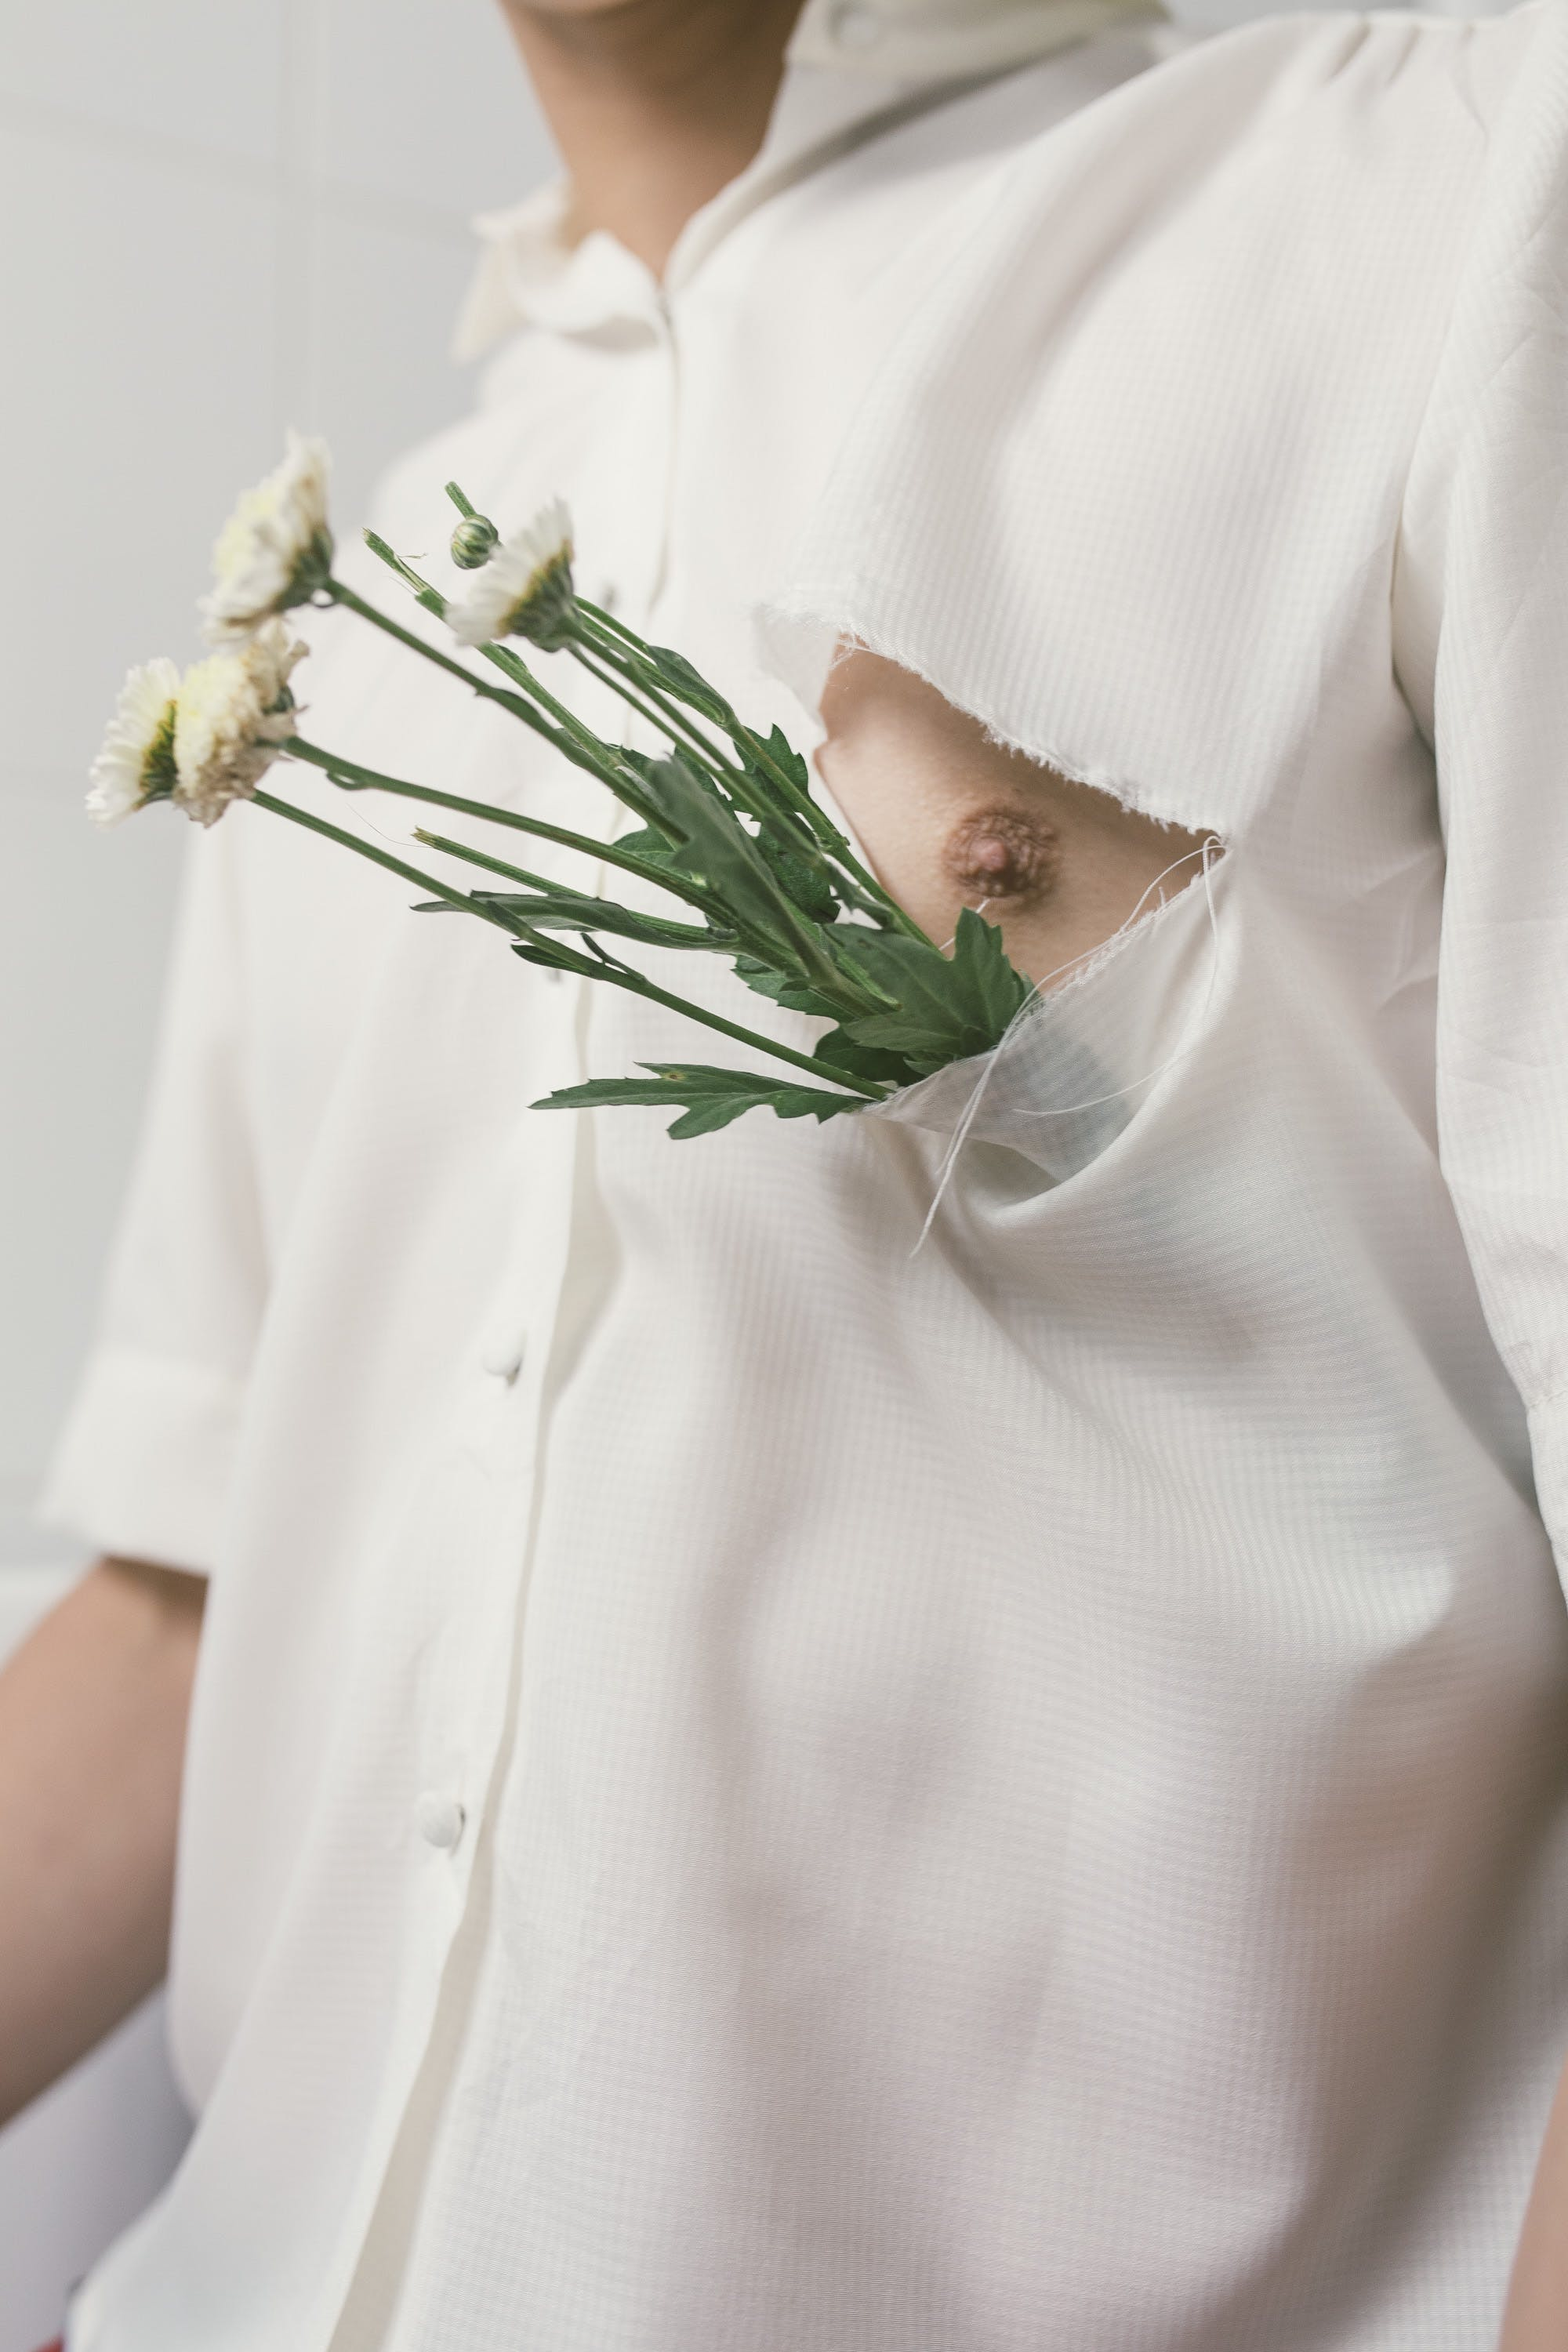 Man in White Button-up Shirt With White Flowers